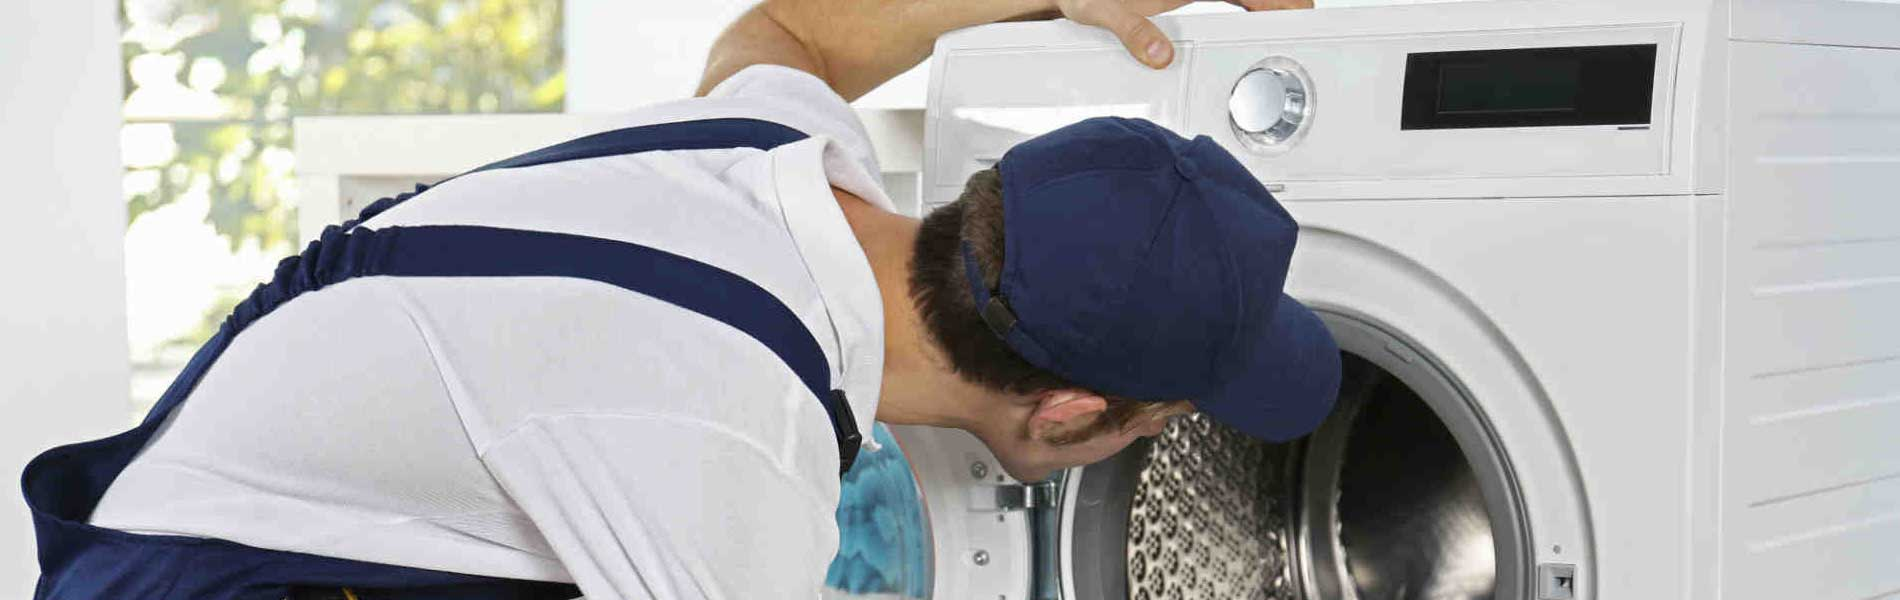 LG Washing Machine Repair in Kilpauk